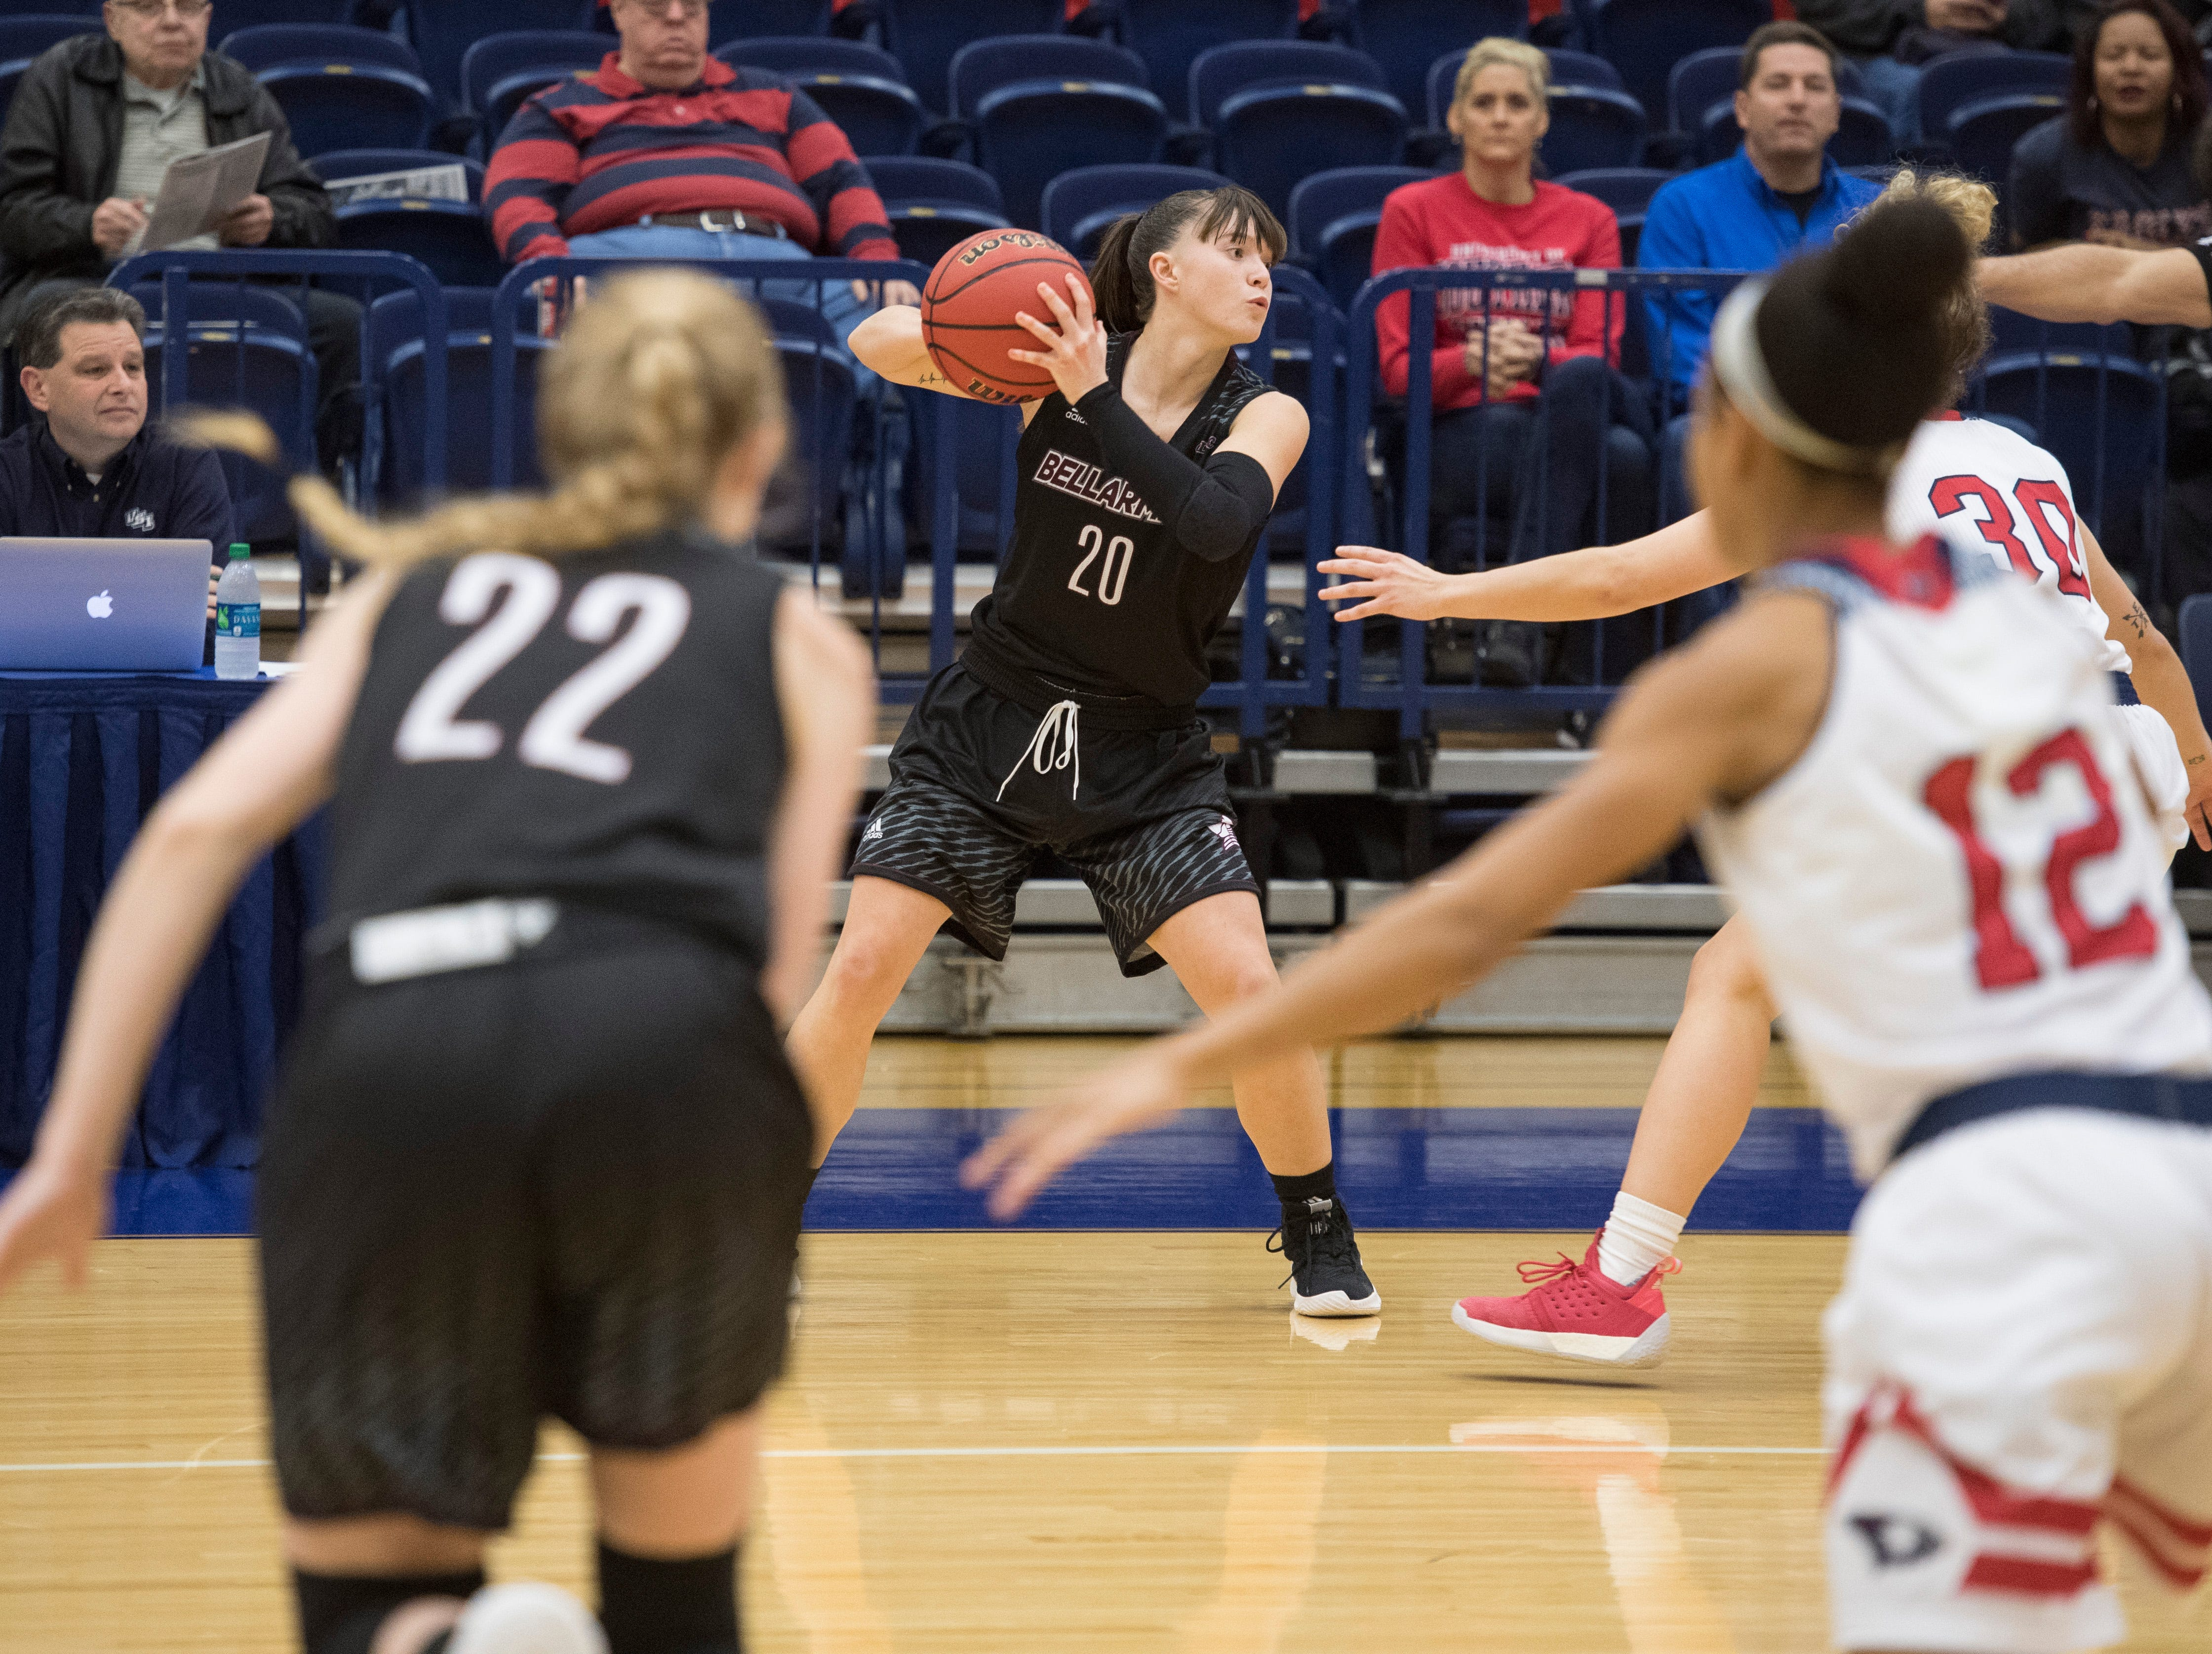 Bellarmine's Katie Downey (20) looks to pass the ball during the USI vs Bellarmine game at the PAC Saturday, Dec. 1, 2018.